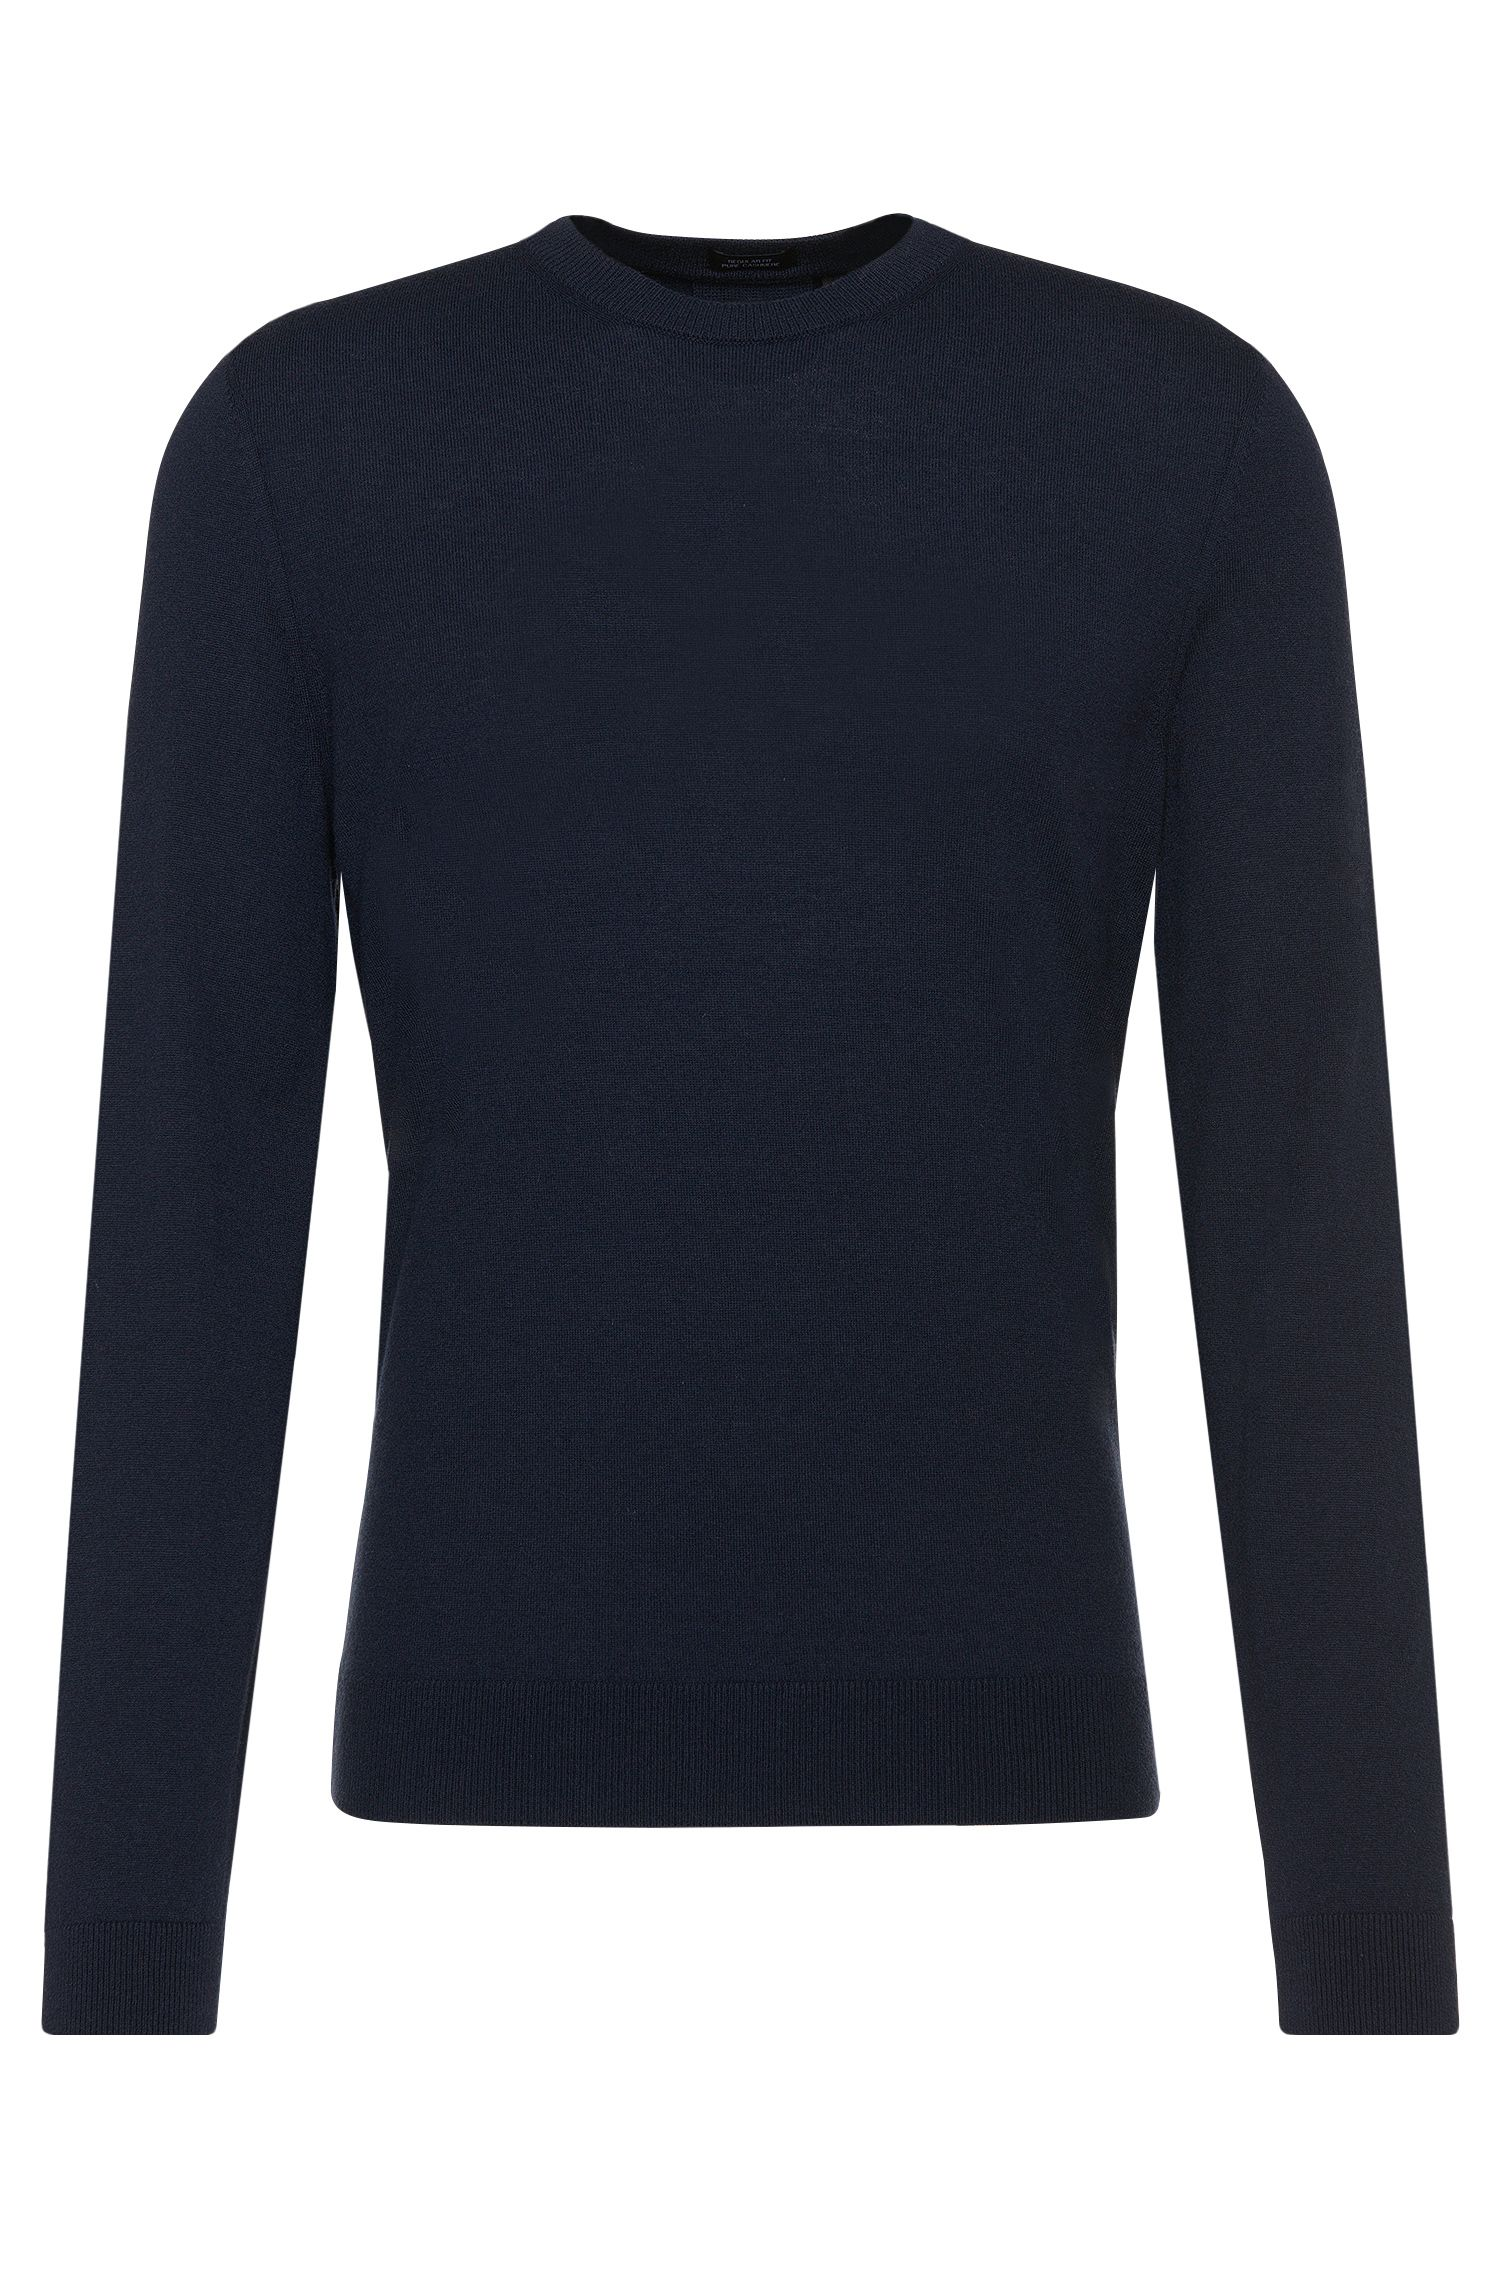 Regular-Fit Tailored Pullover aus Kaschmir: 'T-Borello', Dunkelblau